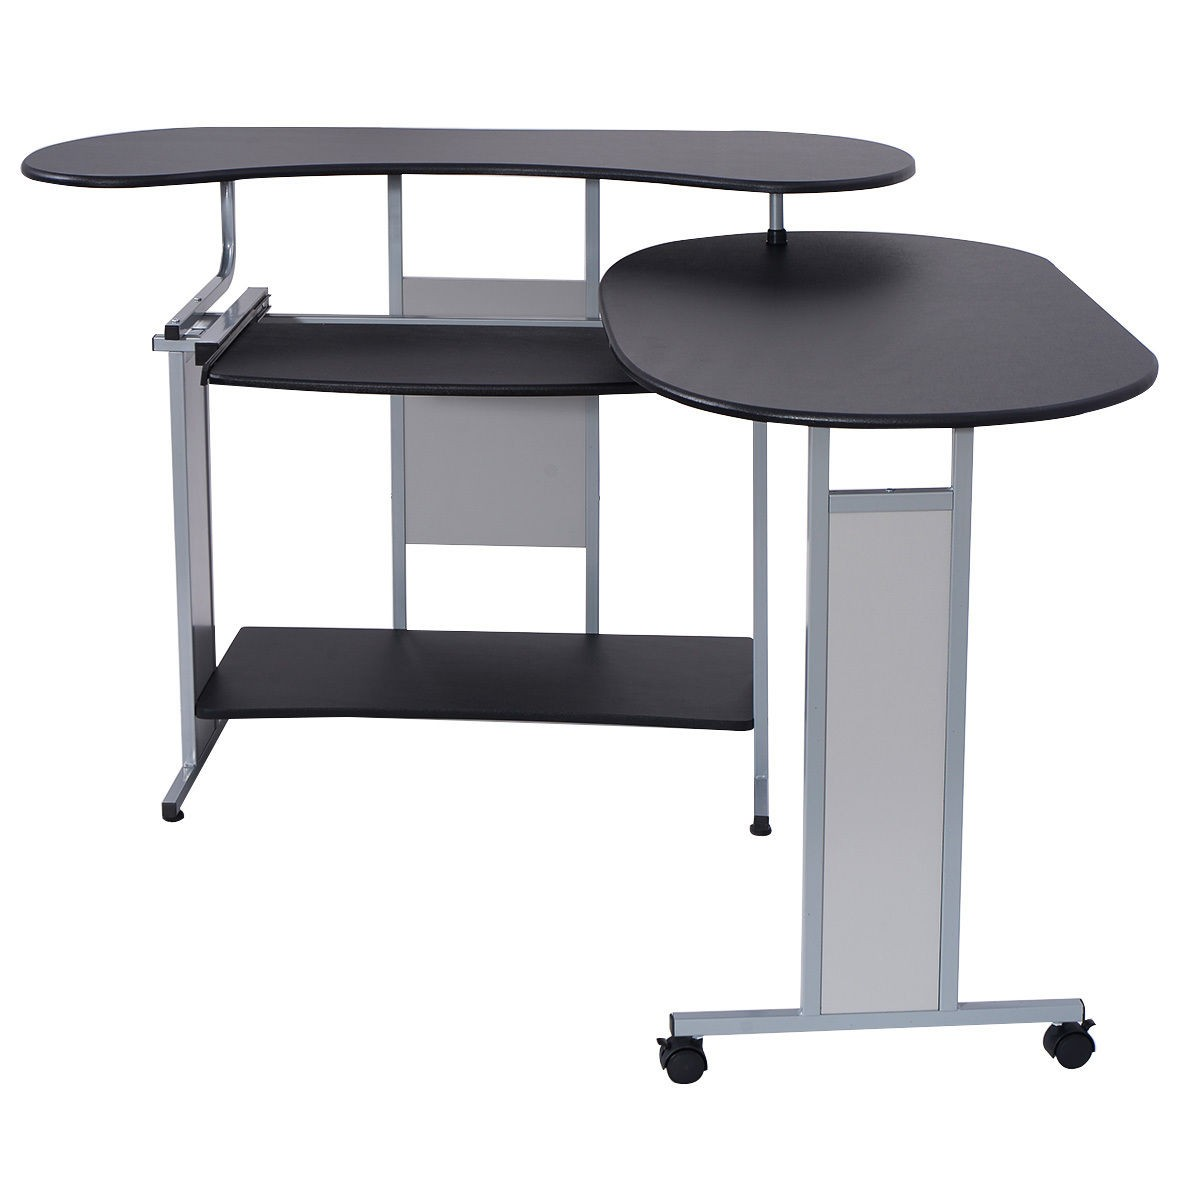 stylish finds in a bag epic on portable expandable space office deal amazing international desk home shop work for